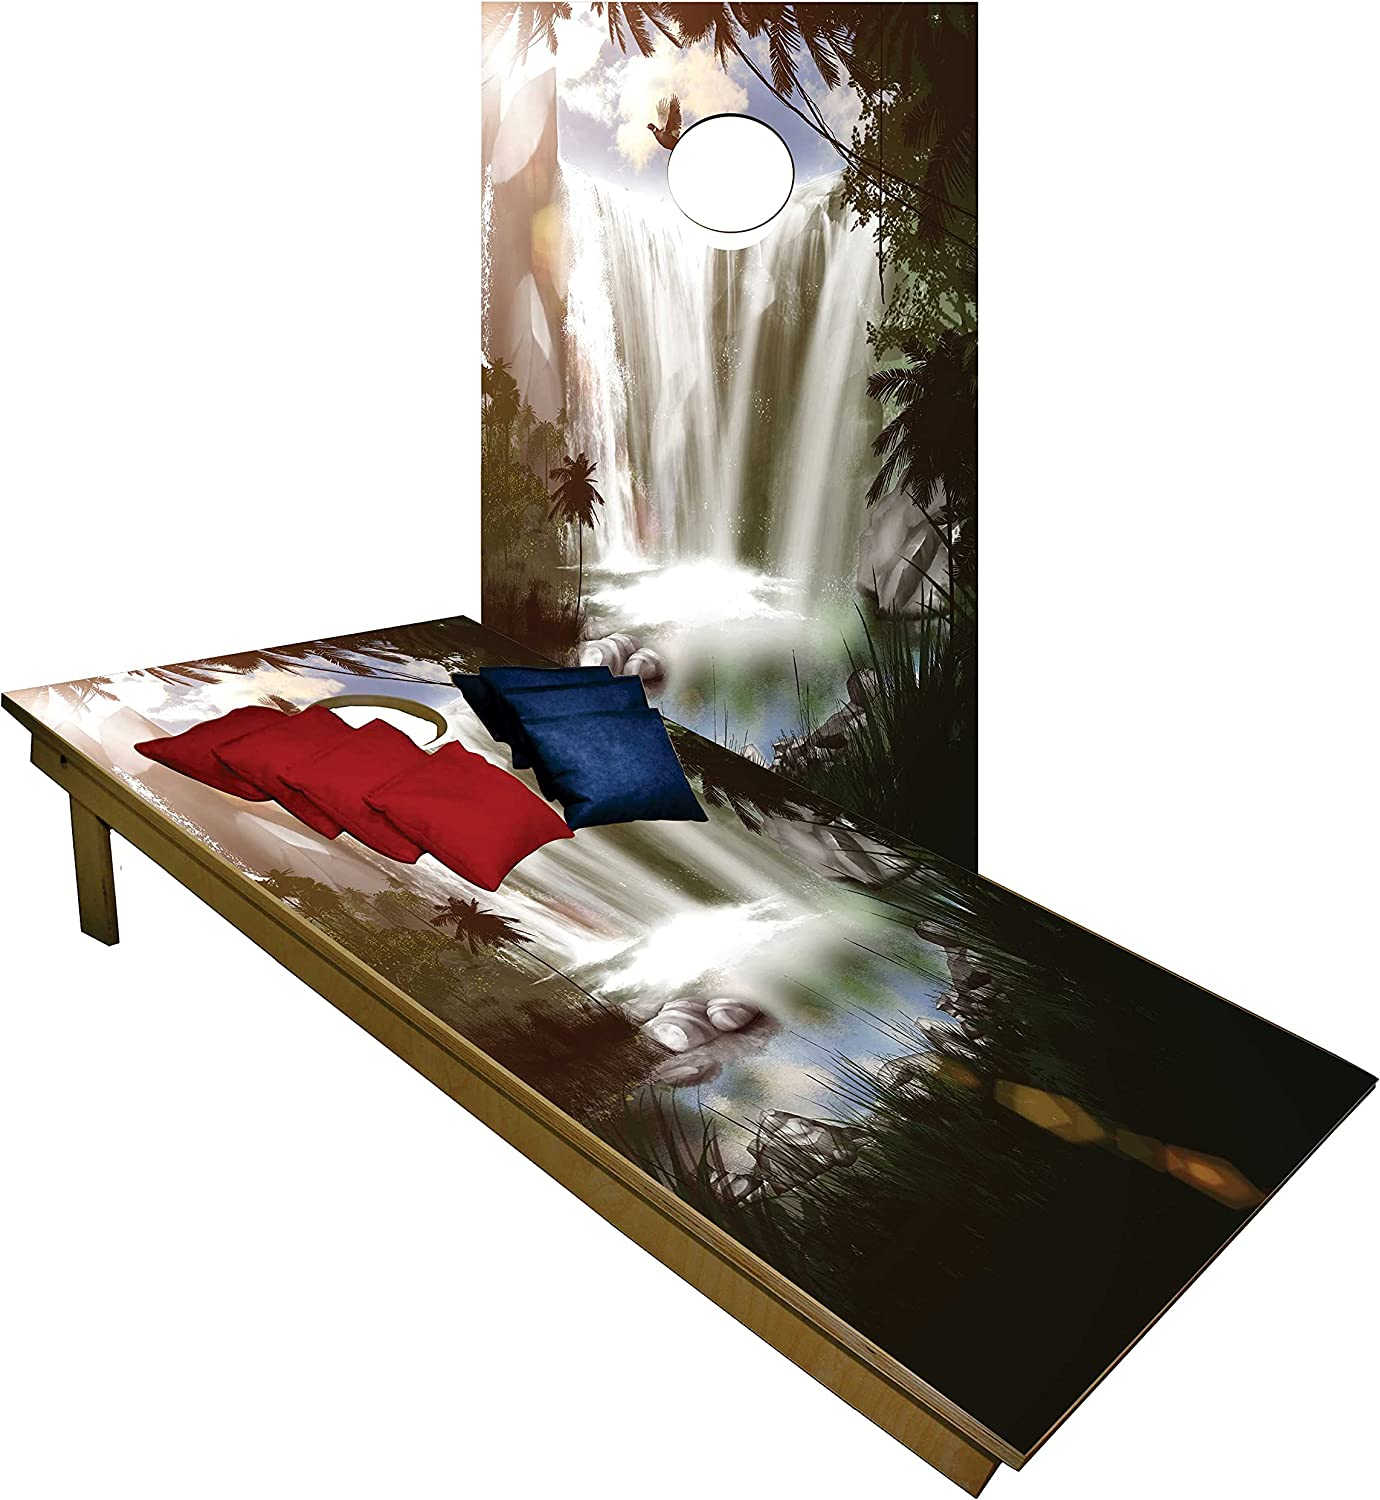 BackYardGamesUSA Cornhole Colorado Springs Mall Set -Waterfall The in Forrest Max 57% OFF Tailgate